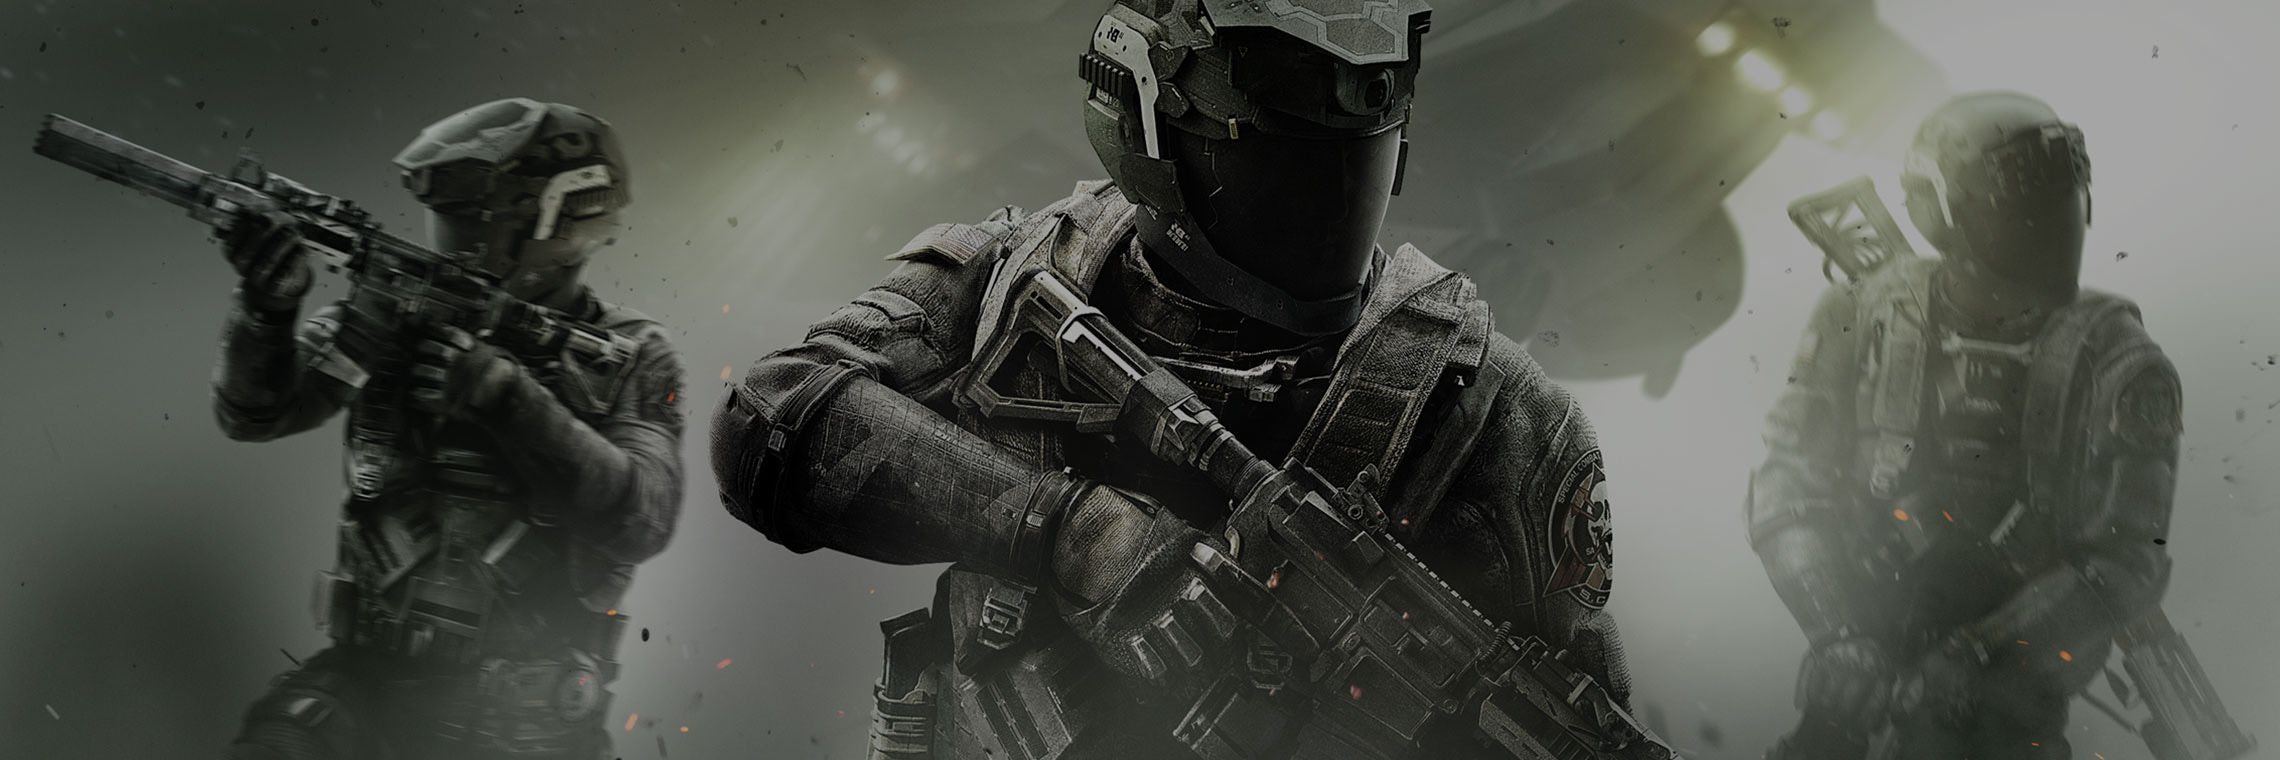 Black Ops 3 Wallpaper Official Call Of Duty Site Updated With The New Infinite